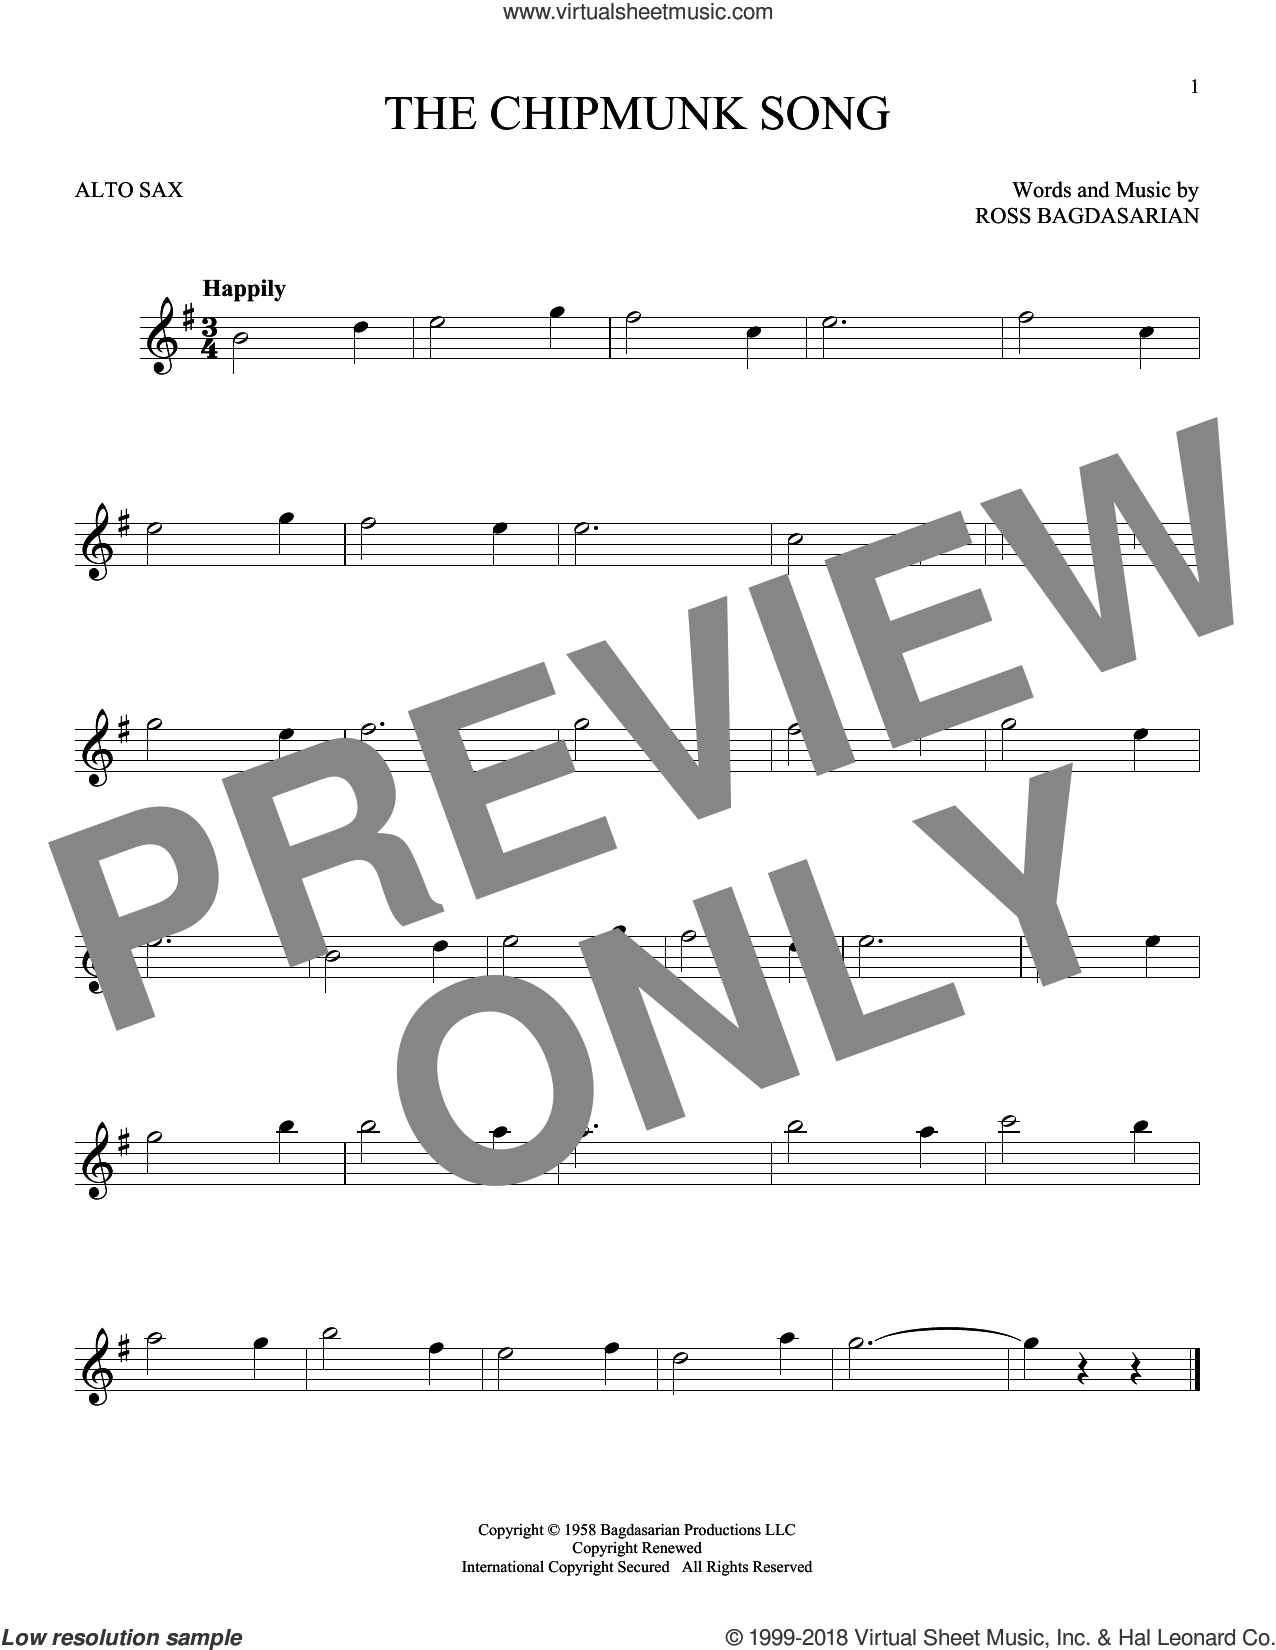 The Chipmunk Song sheet music for alto saxophone solo by Ross Bagdasarian, Alvin And The Chipmunks and The Chipmunks, intermediate skill level